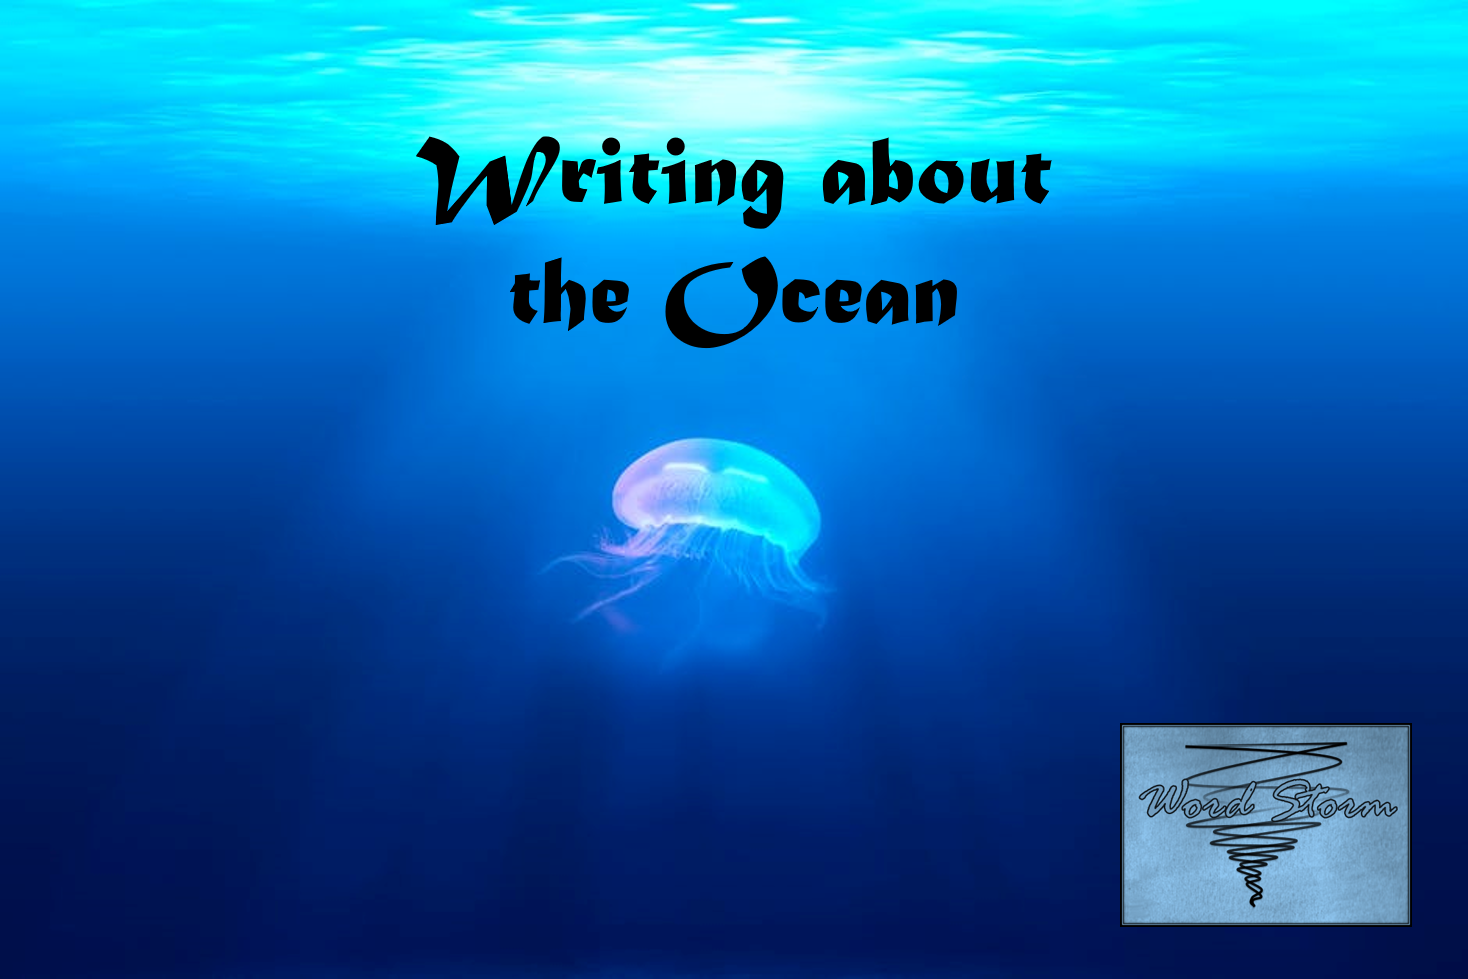 the ocean essay I am comforted by the sounds of the ocean the rhythmic pounding of the waves represses all of my worries essays related to descriptive essay - at the beach 1.